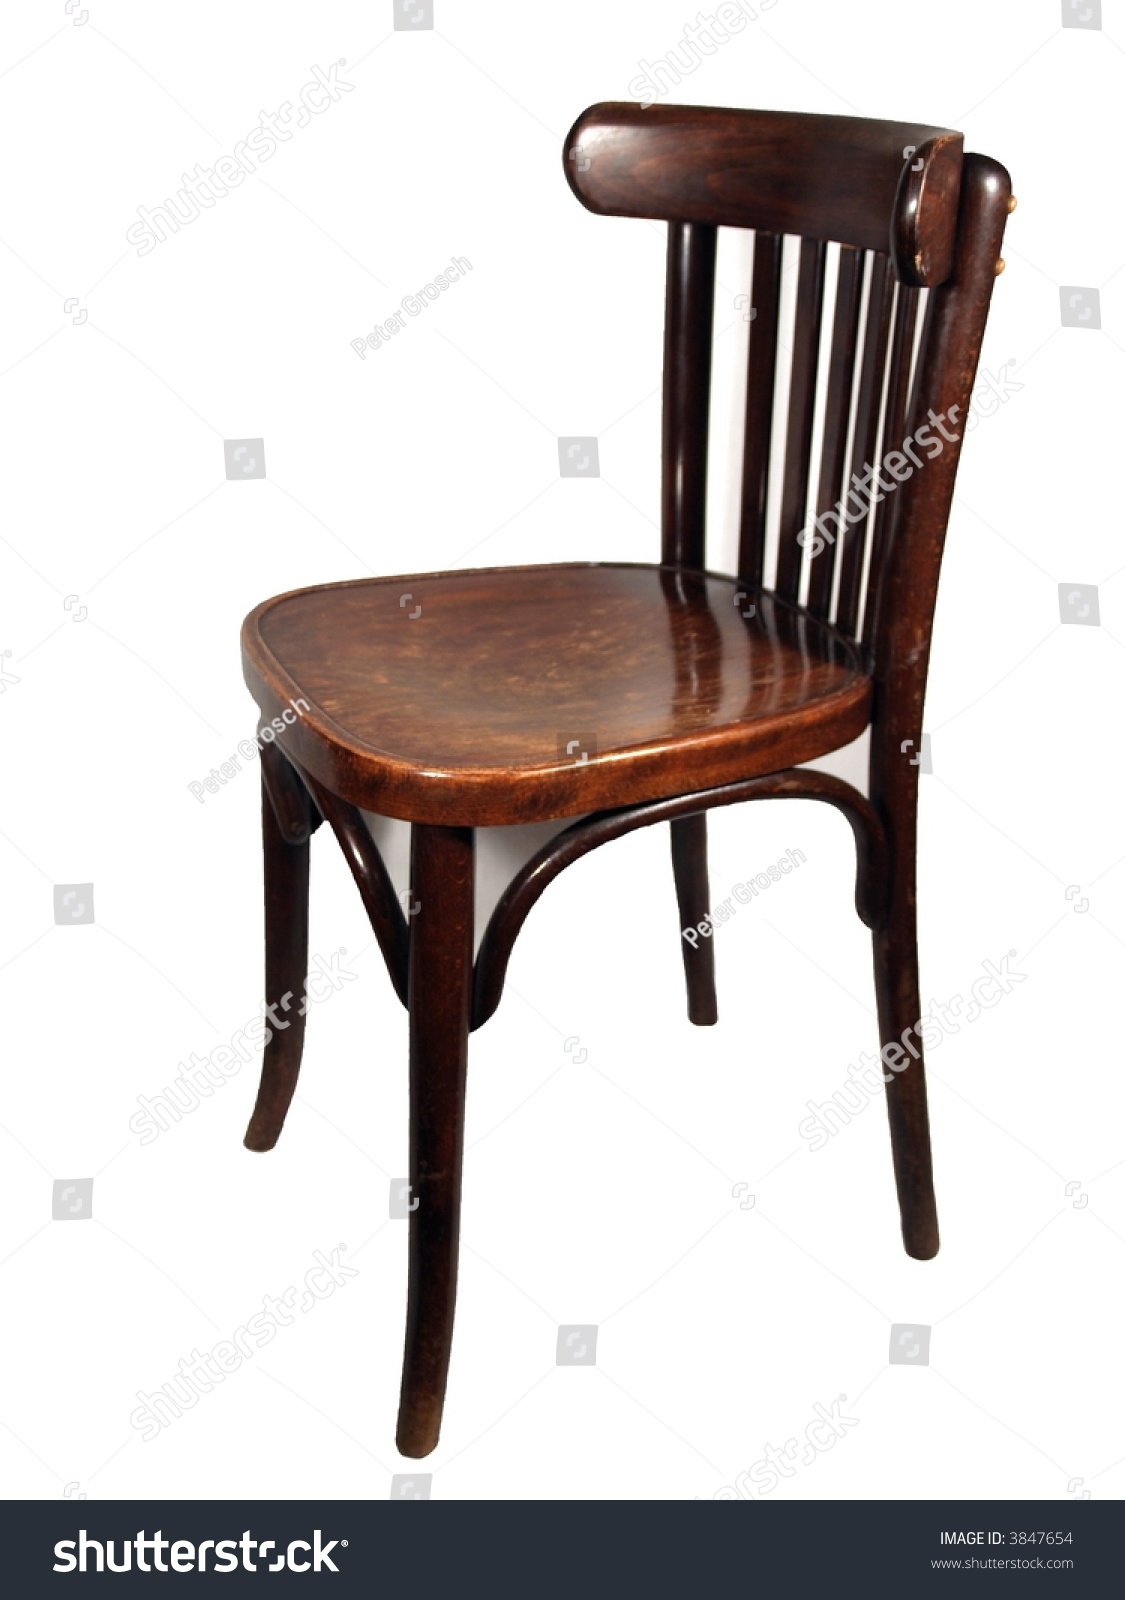 Old wooden chairs - Old Wooden Chair